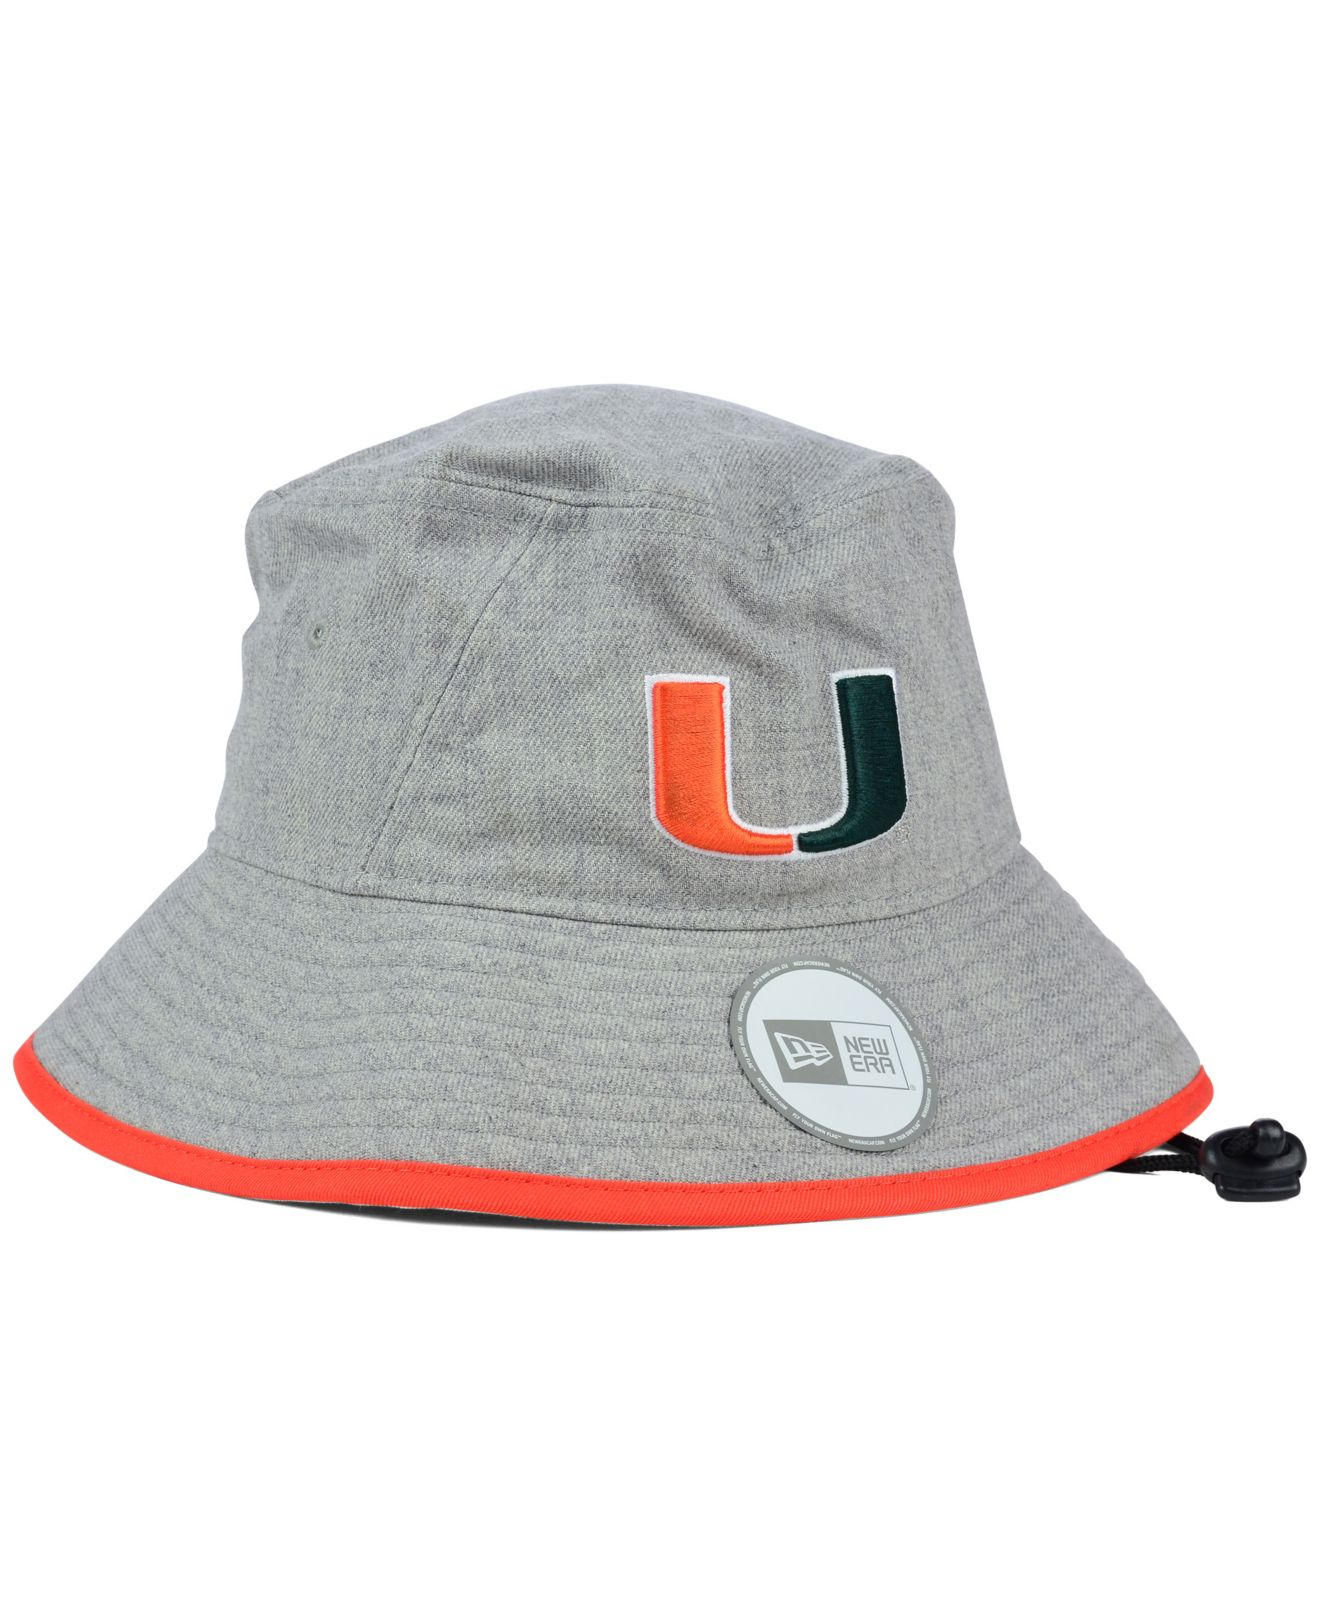 97ebe576cd579 ... new style miami dolphins bucket hats tour ac3a7 d7b00